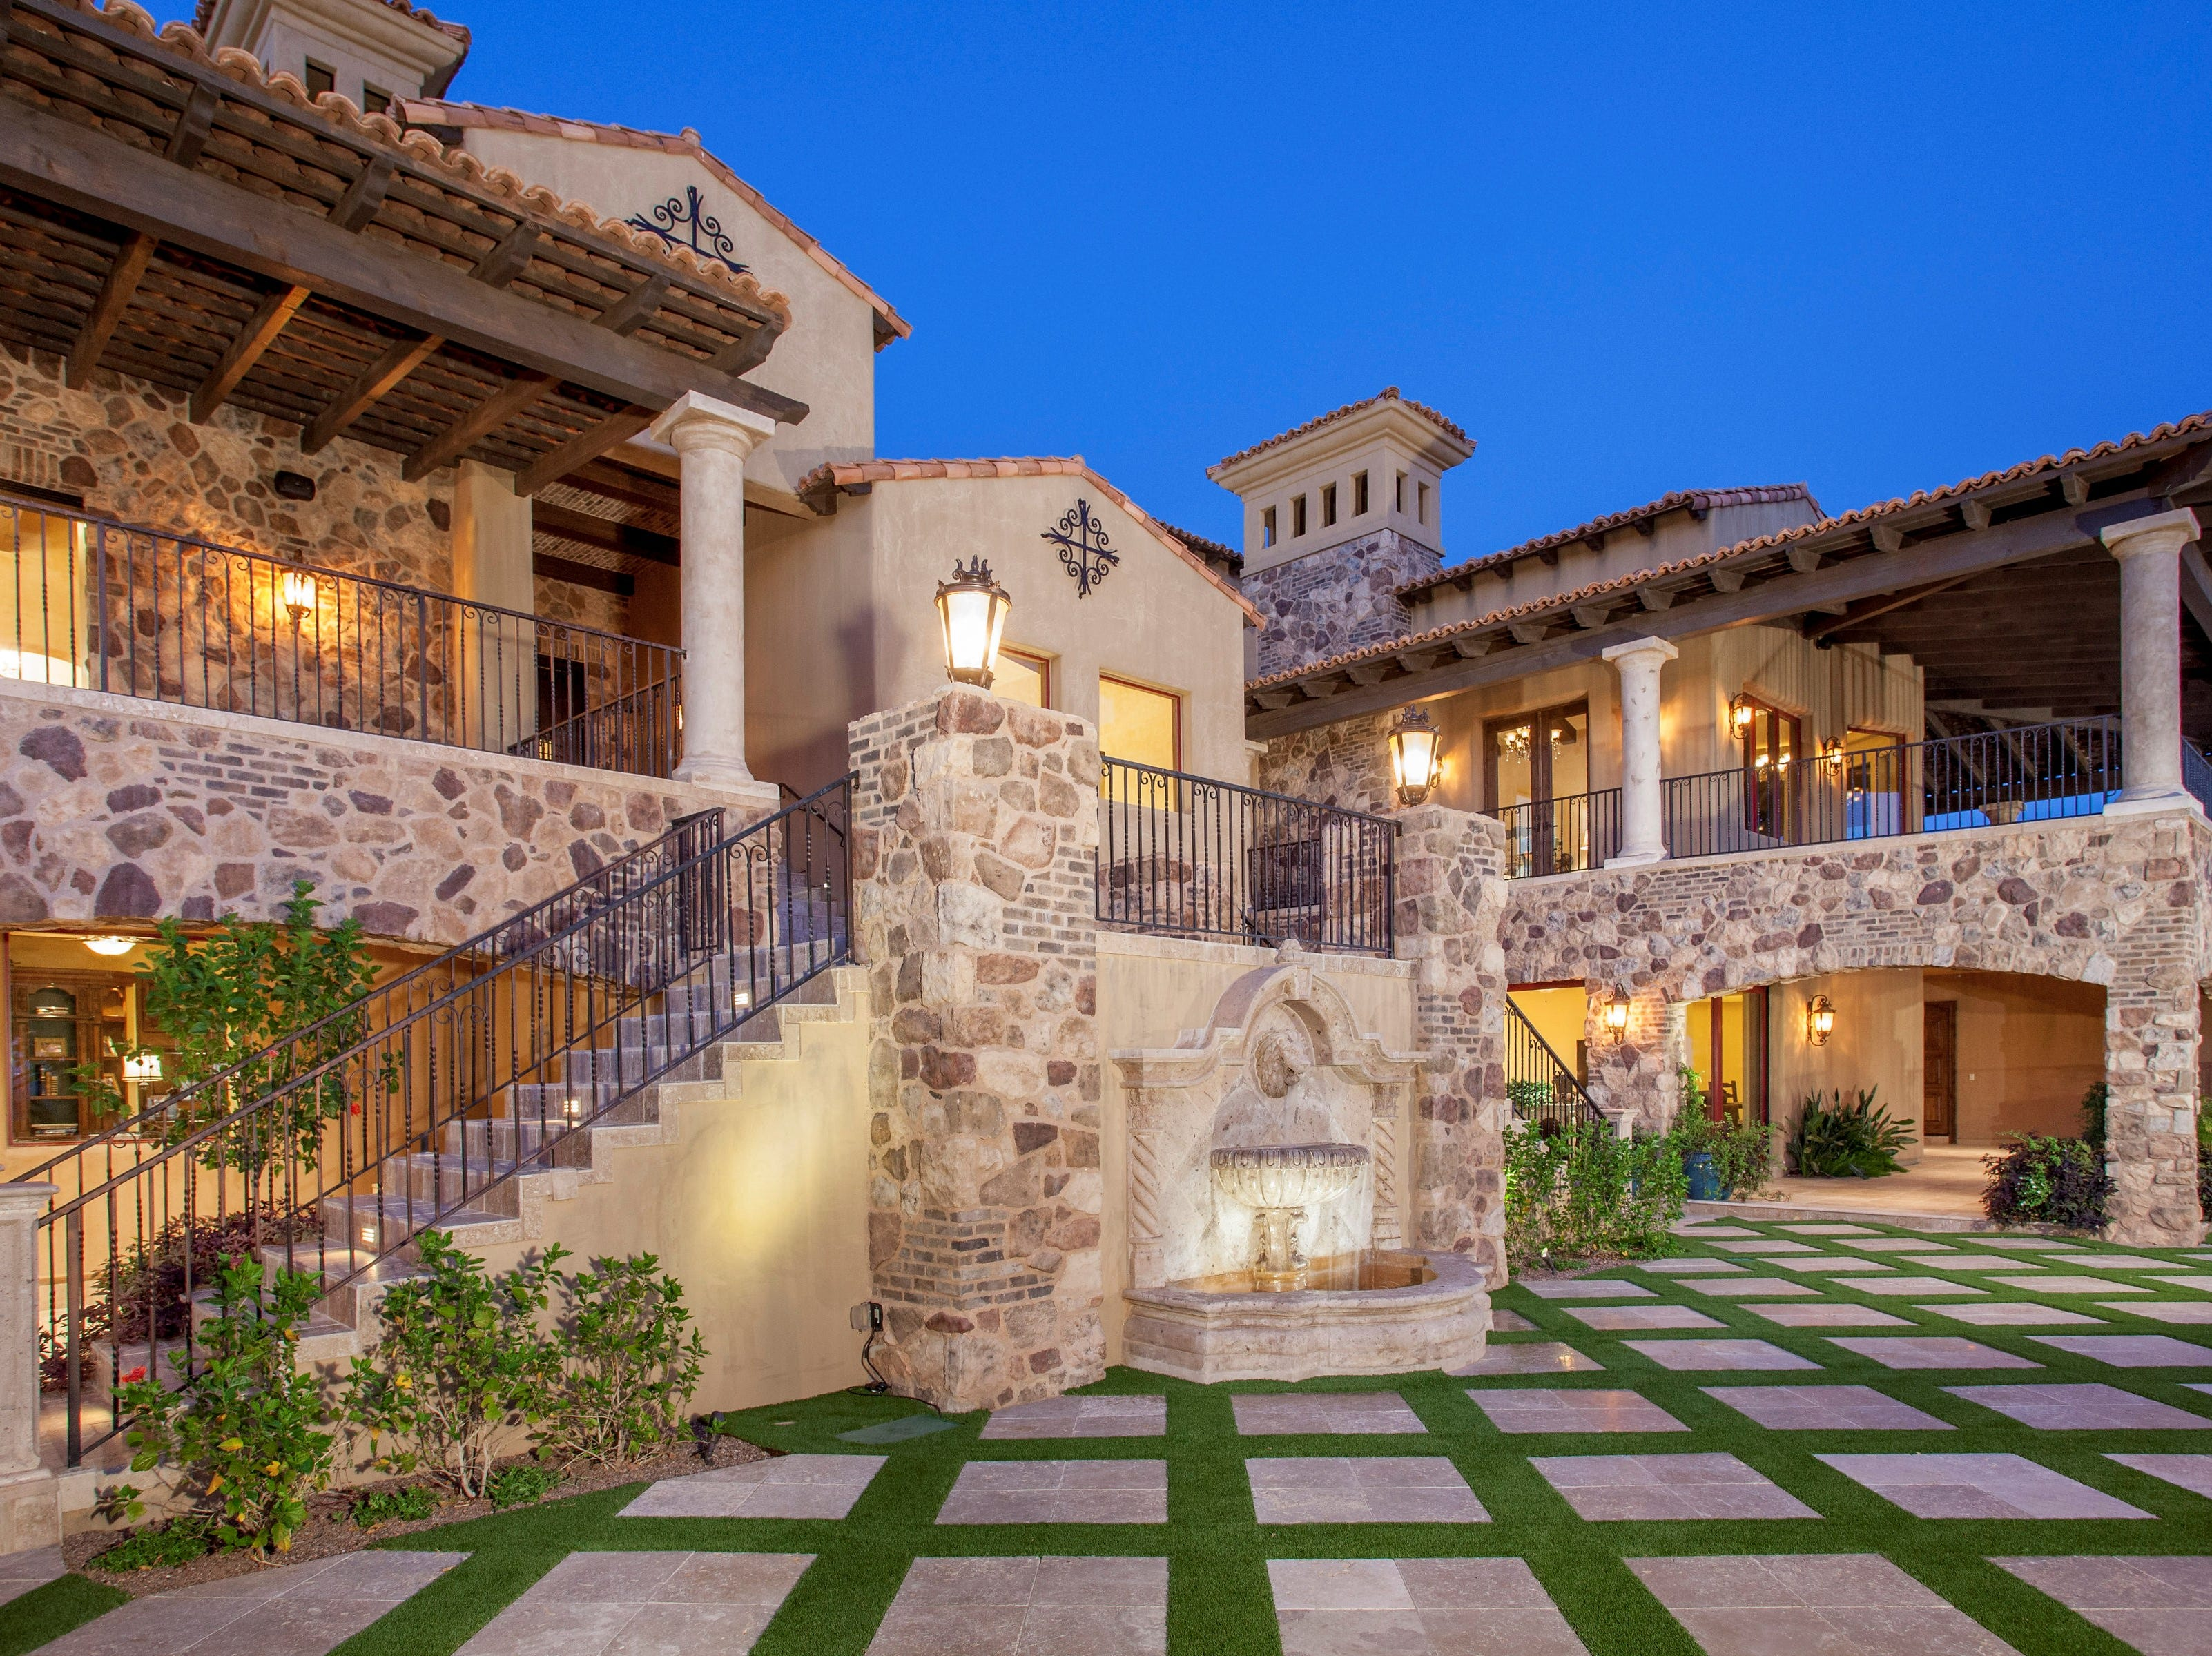 Mojy and Deborah Chian purchased this Fountain Hills mansion with a private courtyard for $3.4M.